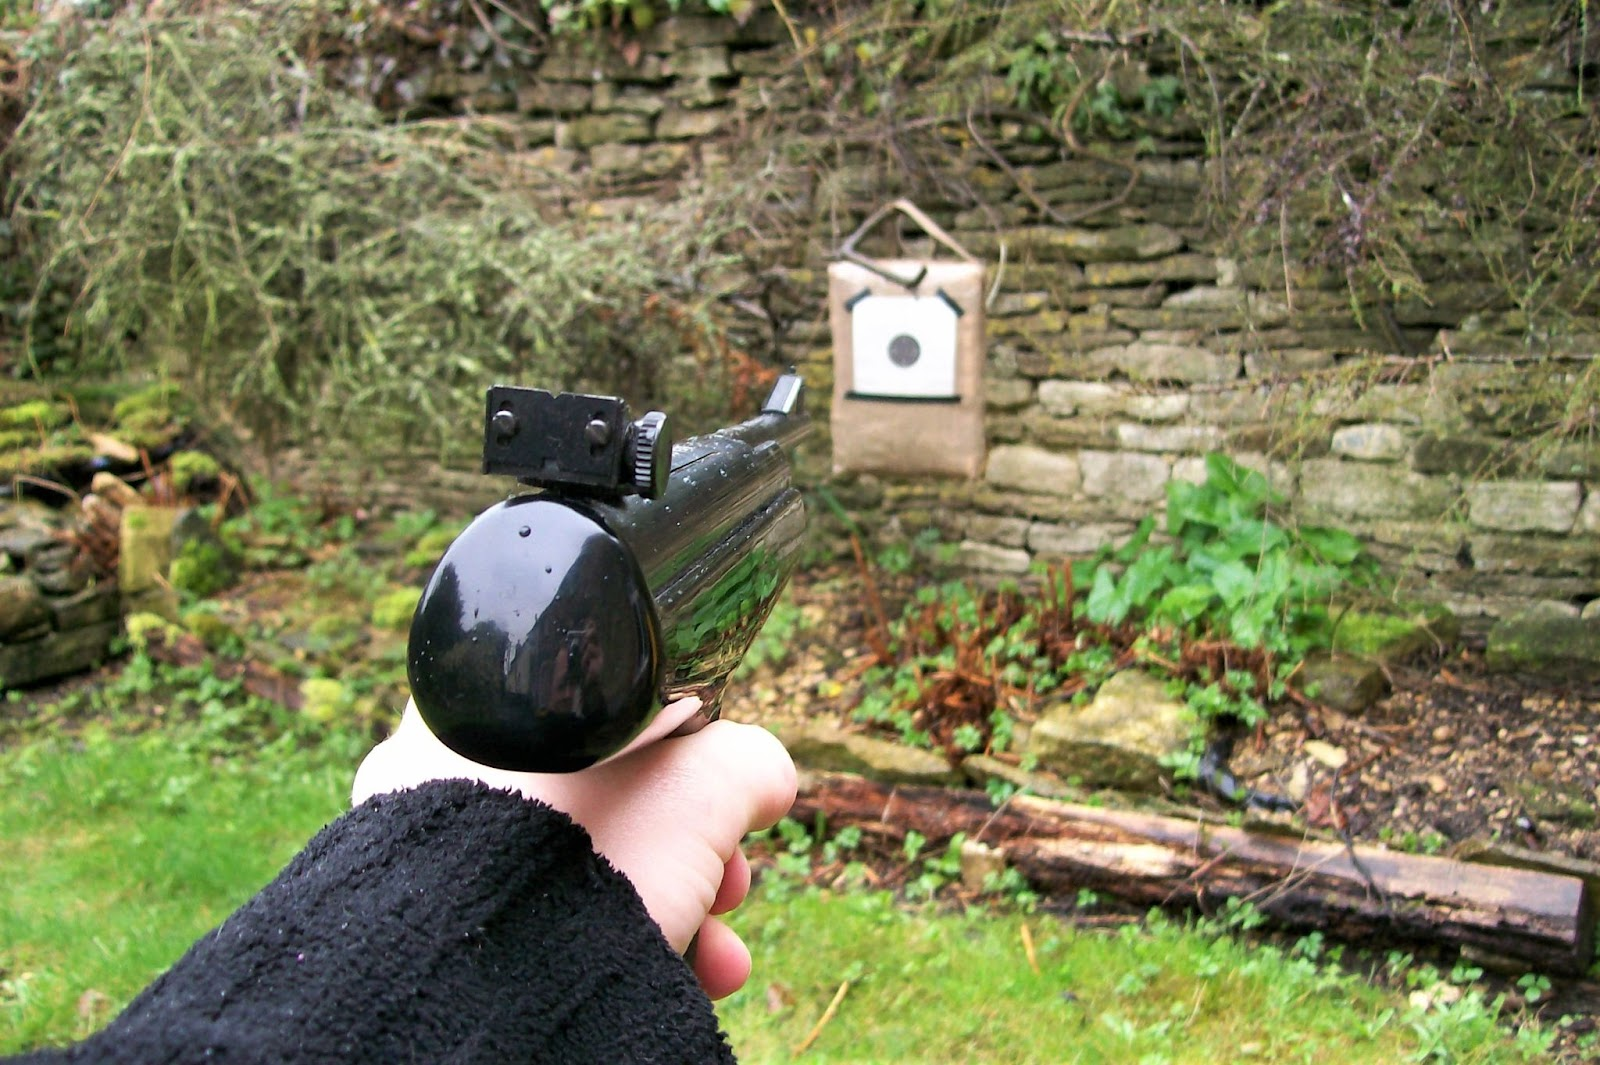 shooting with a safe backstop